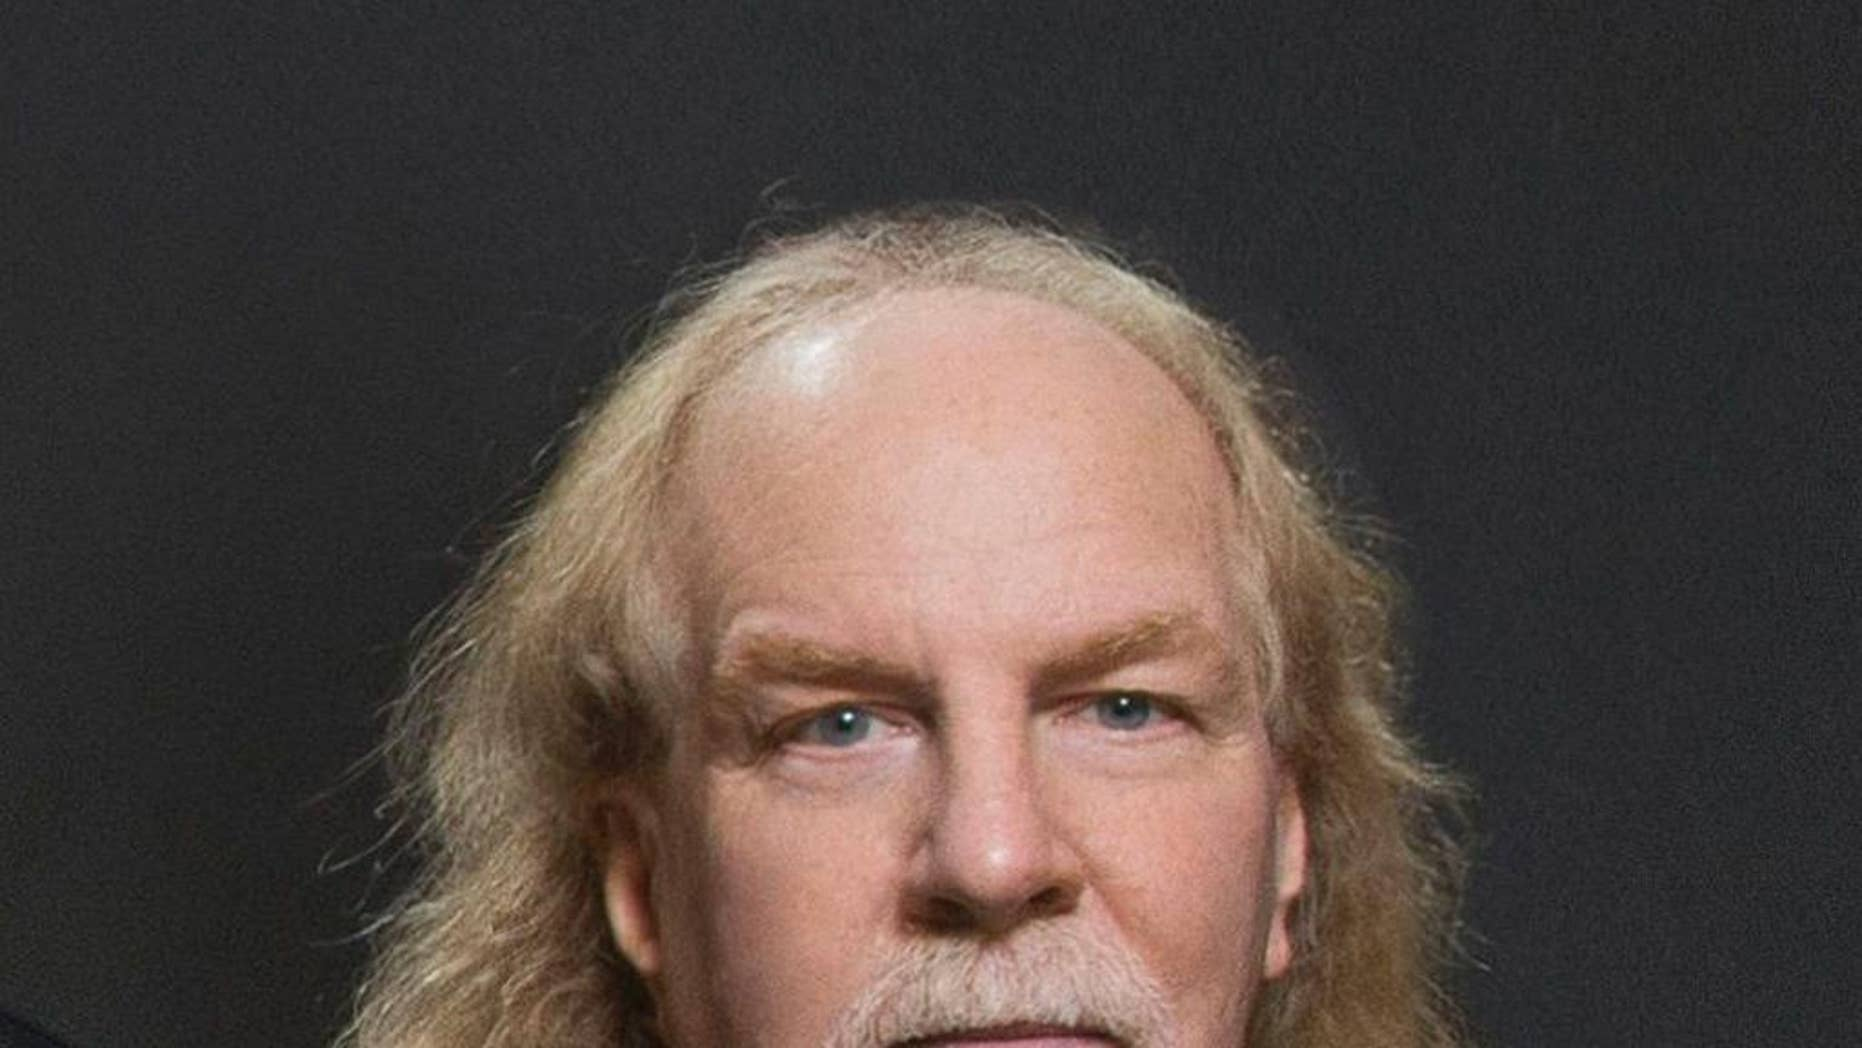 This June 2014 photo provided by Three Dog Night shows keyboard player, Jimmy Greenspoon, an original member of the rock band, Three Dog Night. Greenspoon's agent, Chris Burke, said he died Wednesday, March 11, 2015, of cancer at his home in North Potomac, Md. He was 67. (AP Photo/Three Dog Night, Steve Spatafore)